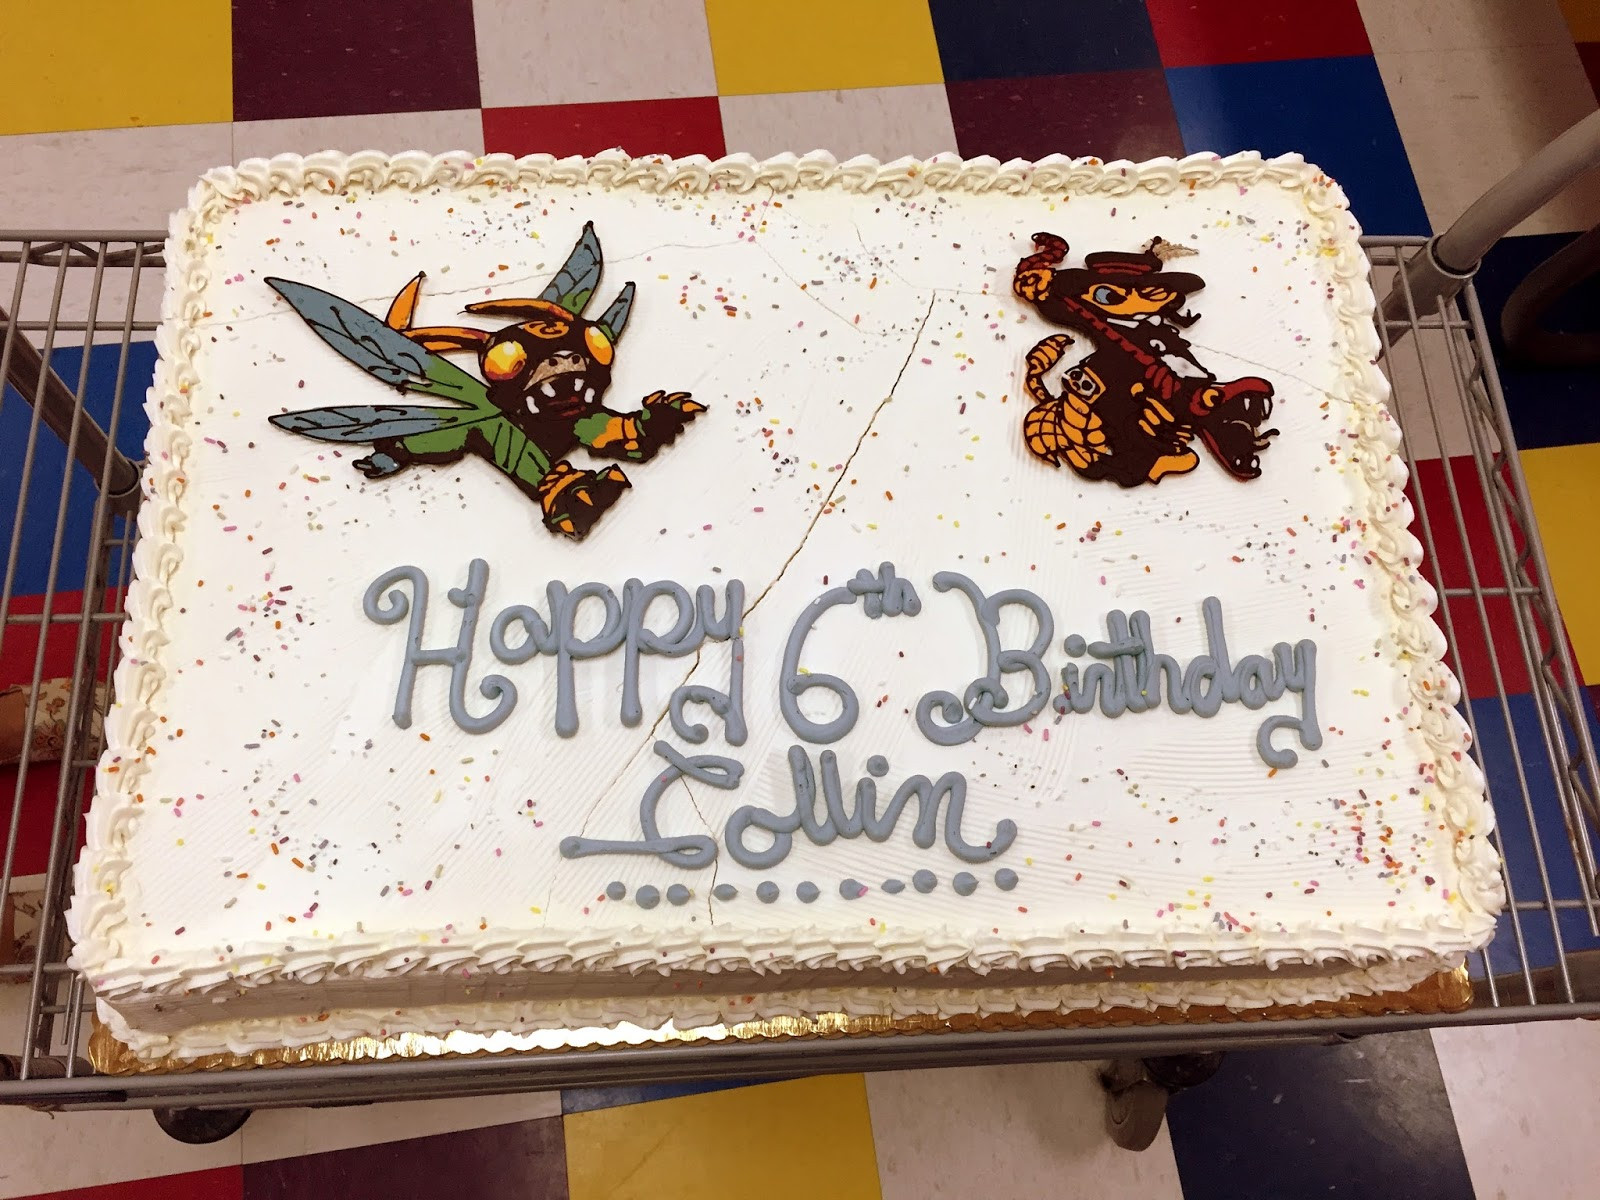 Best ideas about Whole Foods Birthday Cake . Save or Pin Character cakes from Whole Foods Now.